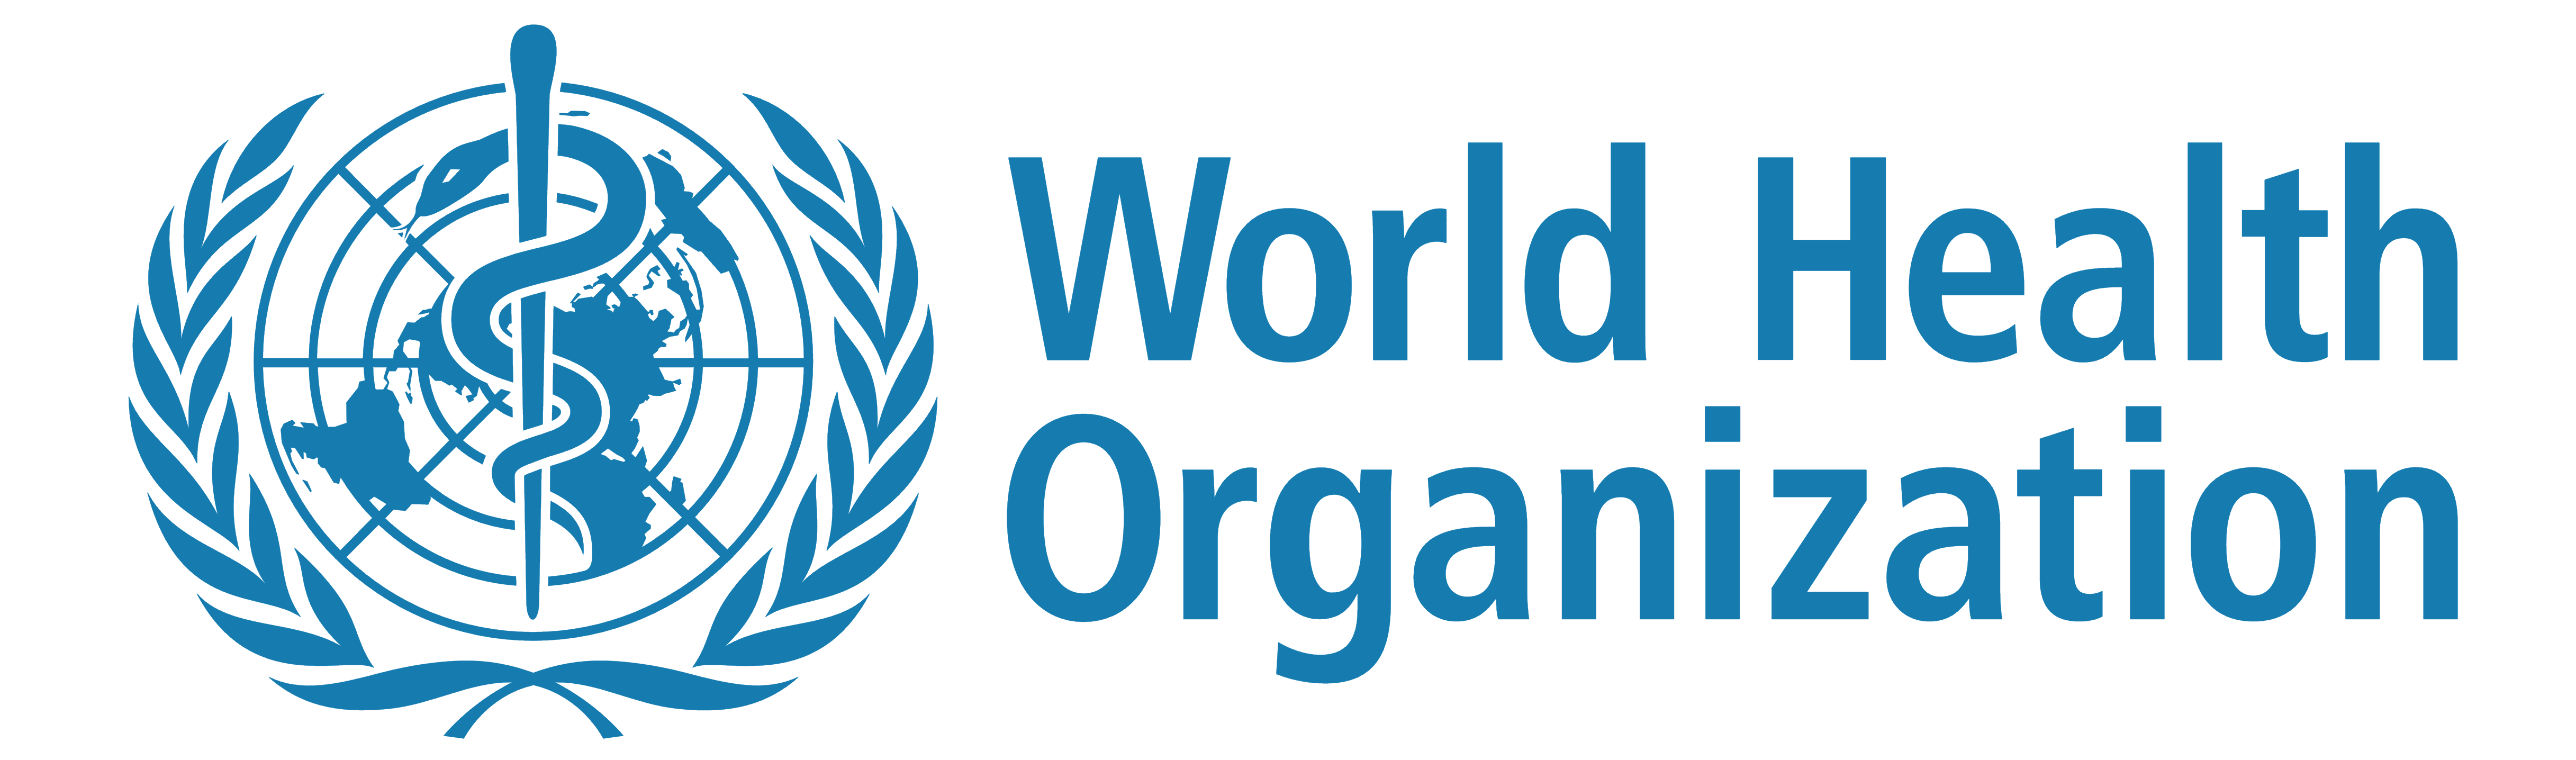 World_Health_Organization_logo_logotype